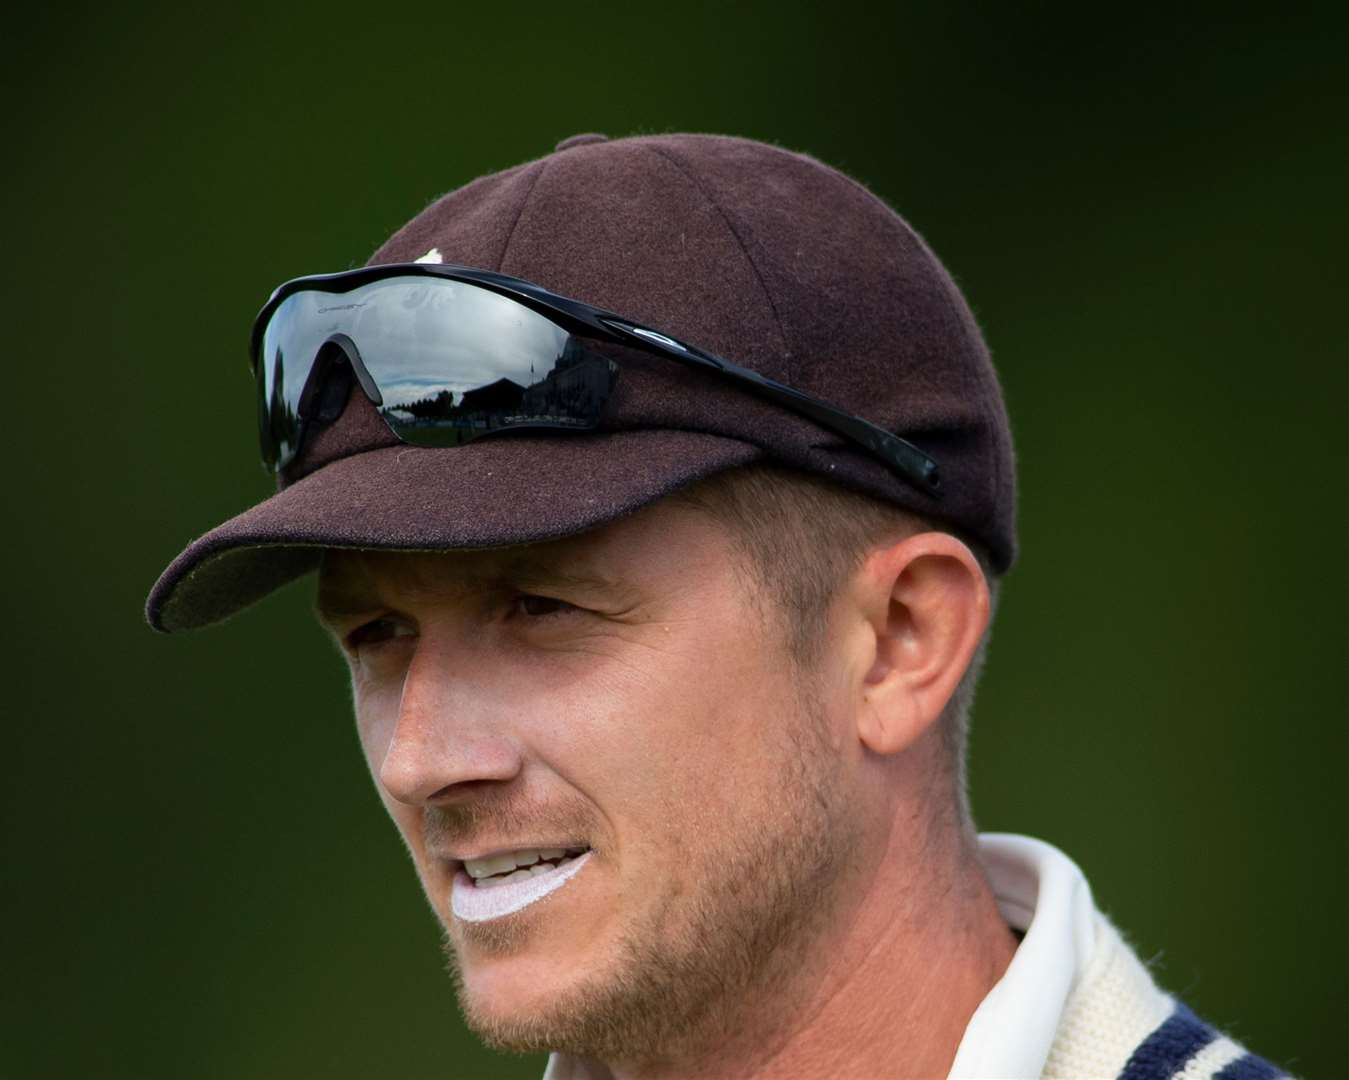 Kent team-mate Joe Denly has also been selected in the squad after leaving the Test squad last week